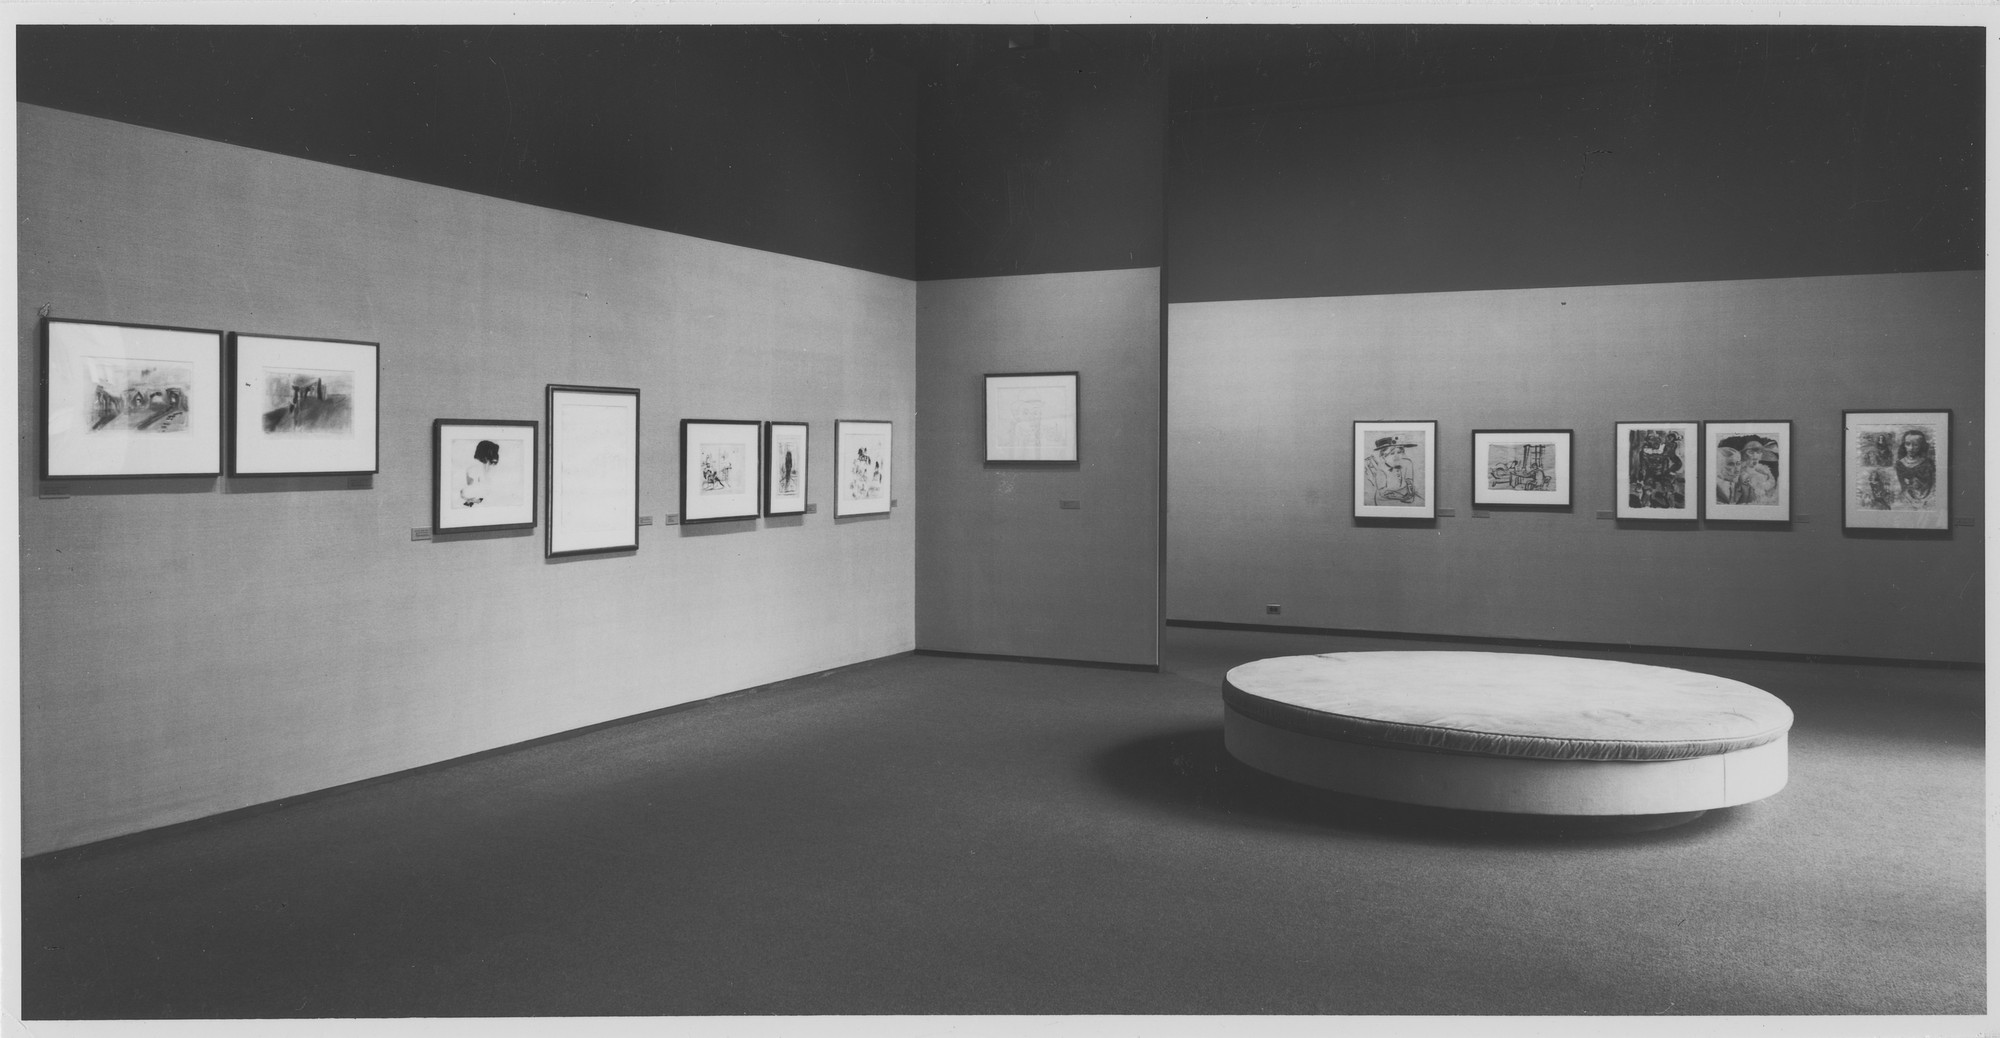 "Installation view of the exhibition, ""Drawings from the Museum Collections."" October 31, 1966–May 8, 1967. Photographic Archive. The Museum of Modern Art Archives, New York. IN811.1. Photograph by Malcolm Varon."